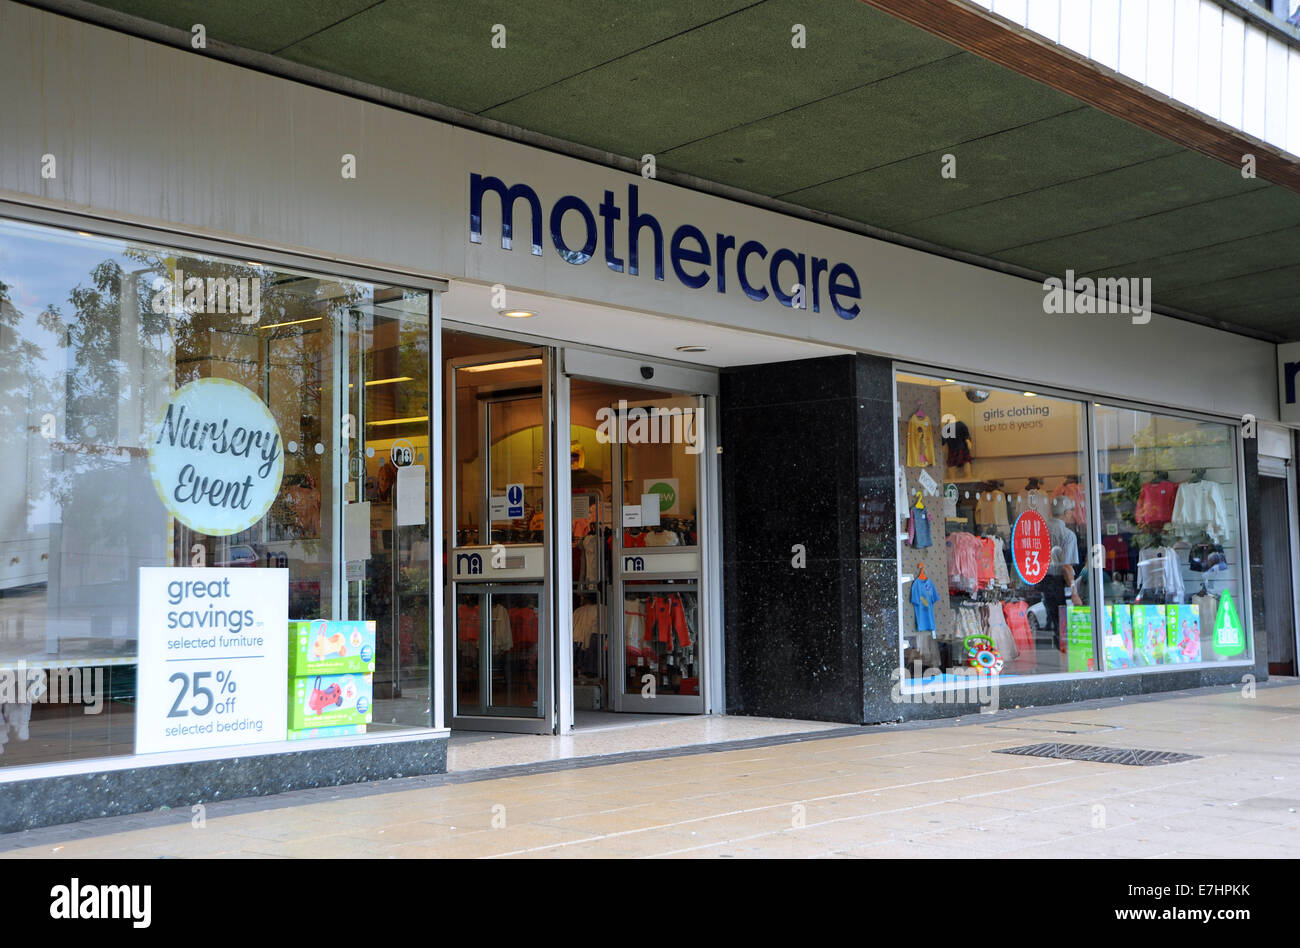 Crawley West Sussex UK - Mothercare store and shop - Stock Image